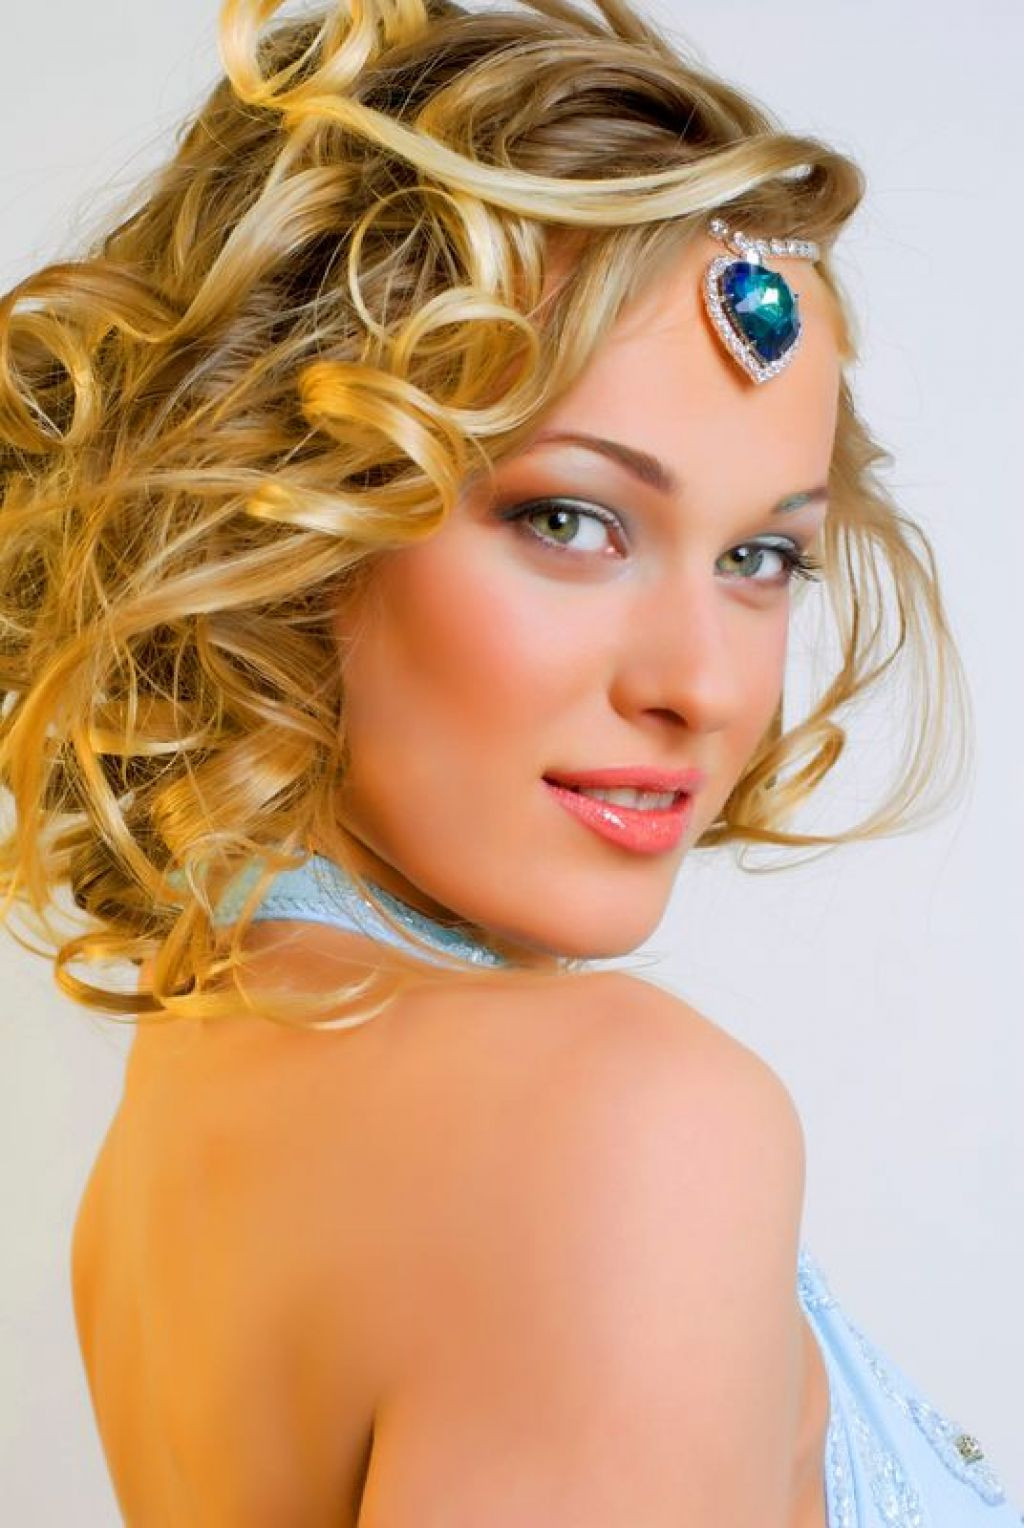 Prom Hairstyles For Medium Hair  Prom Hairstyles For Short To Medium Length Hair HairStyles